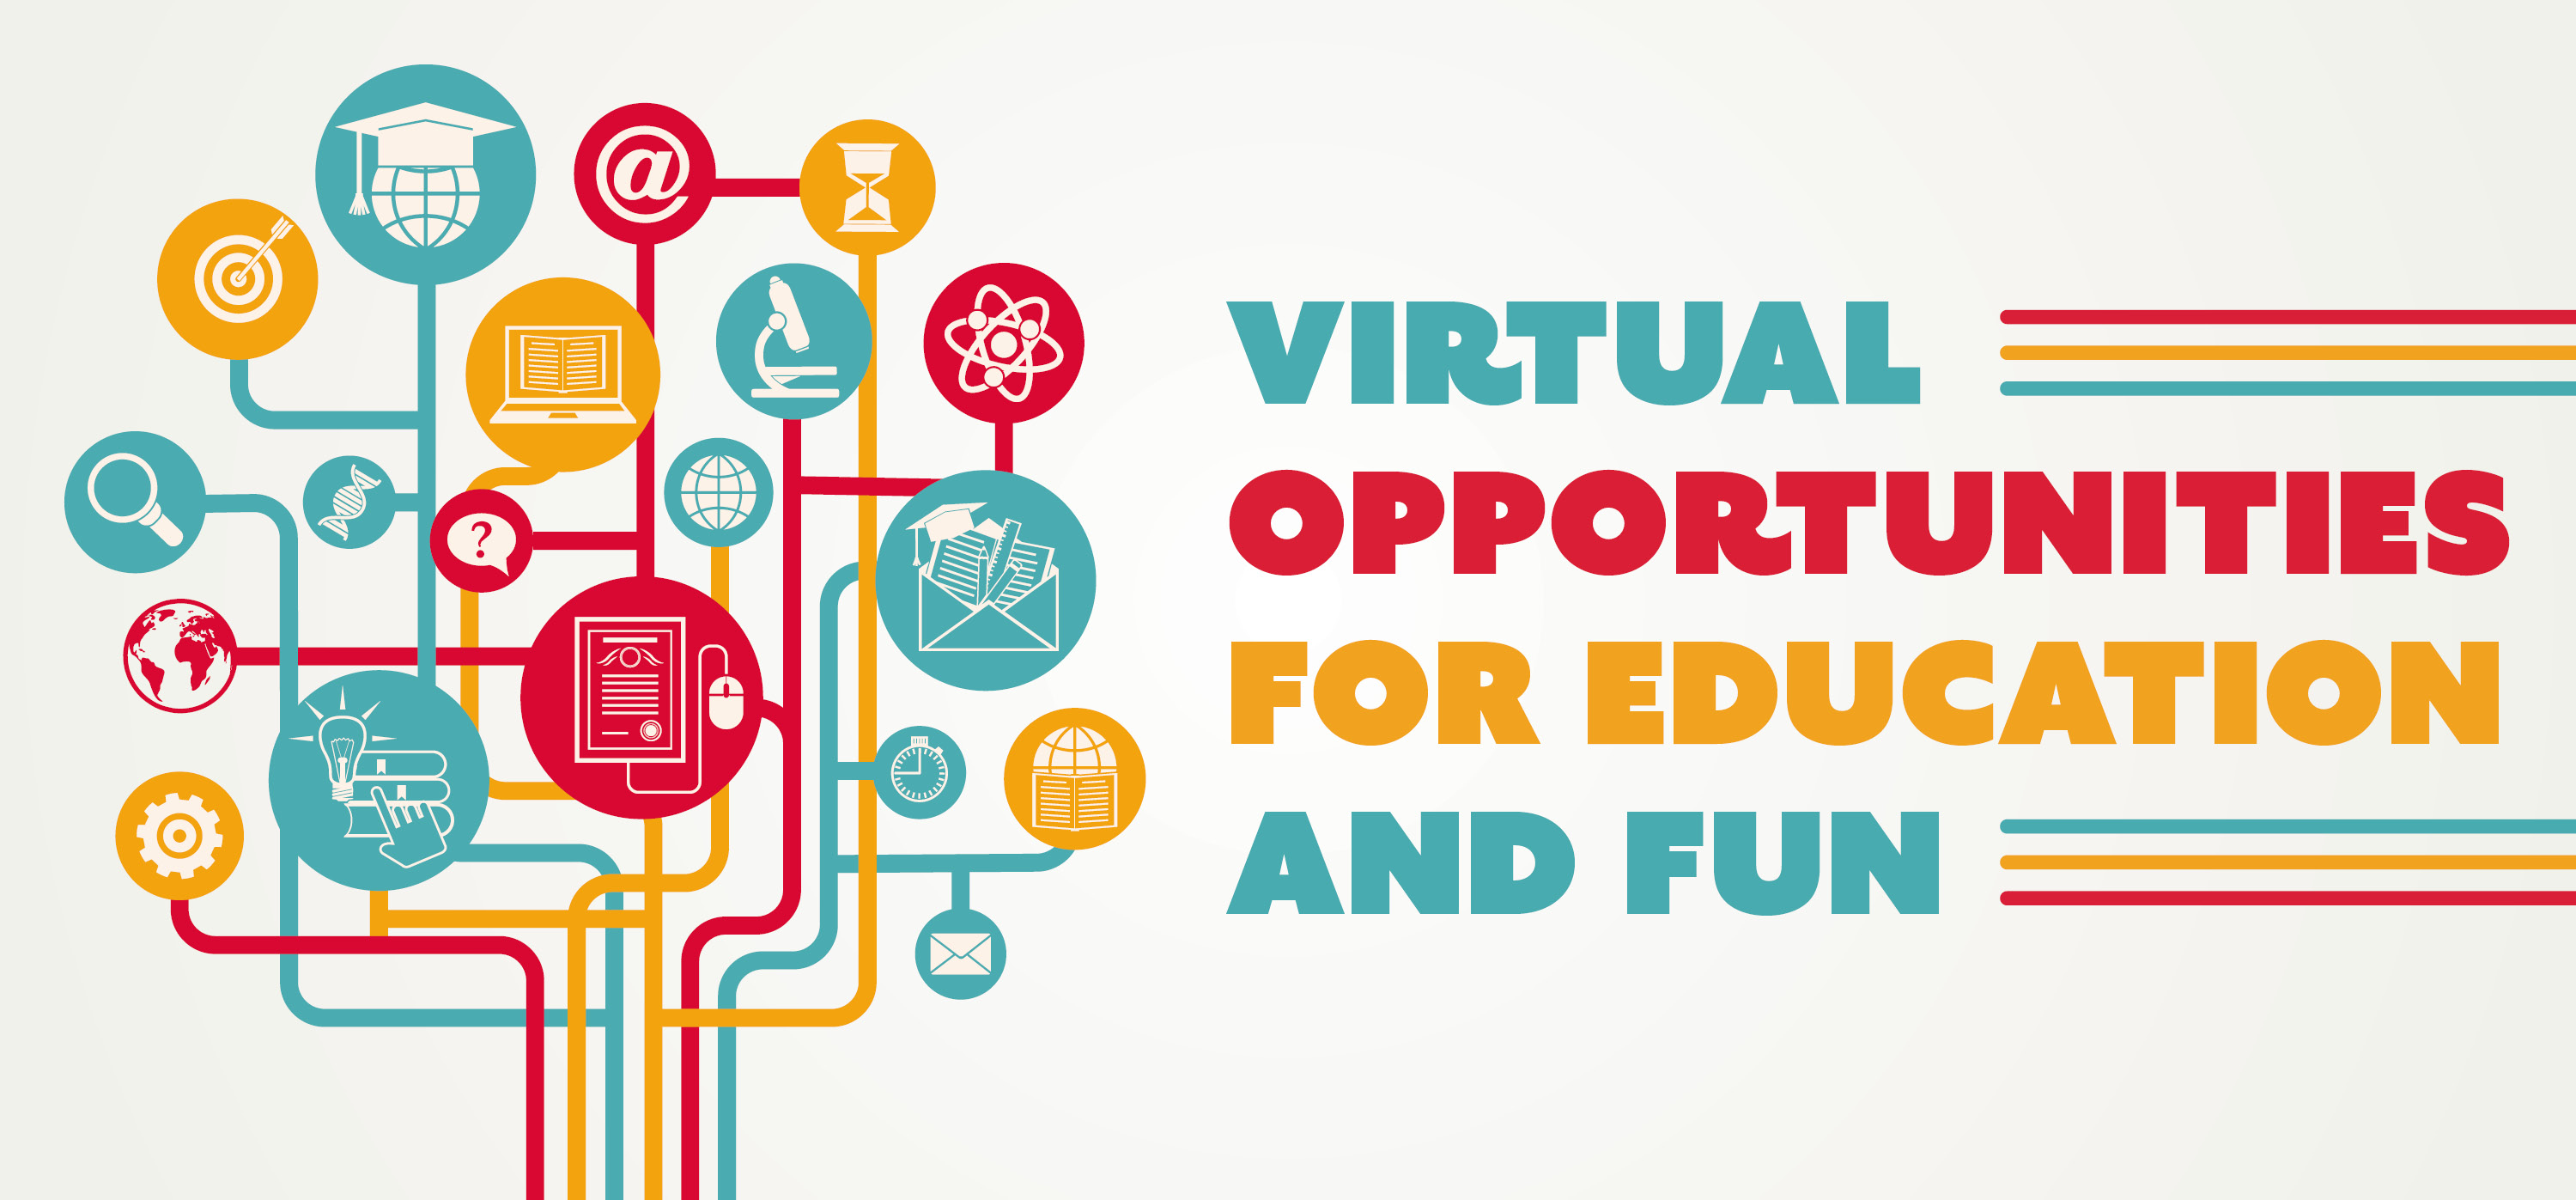 Virtual Opportunities for Education and Fun